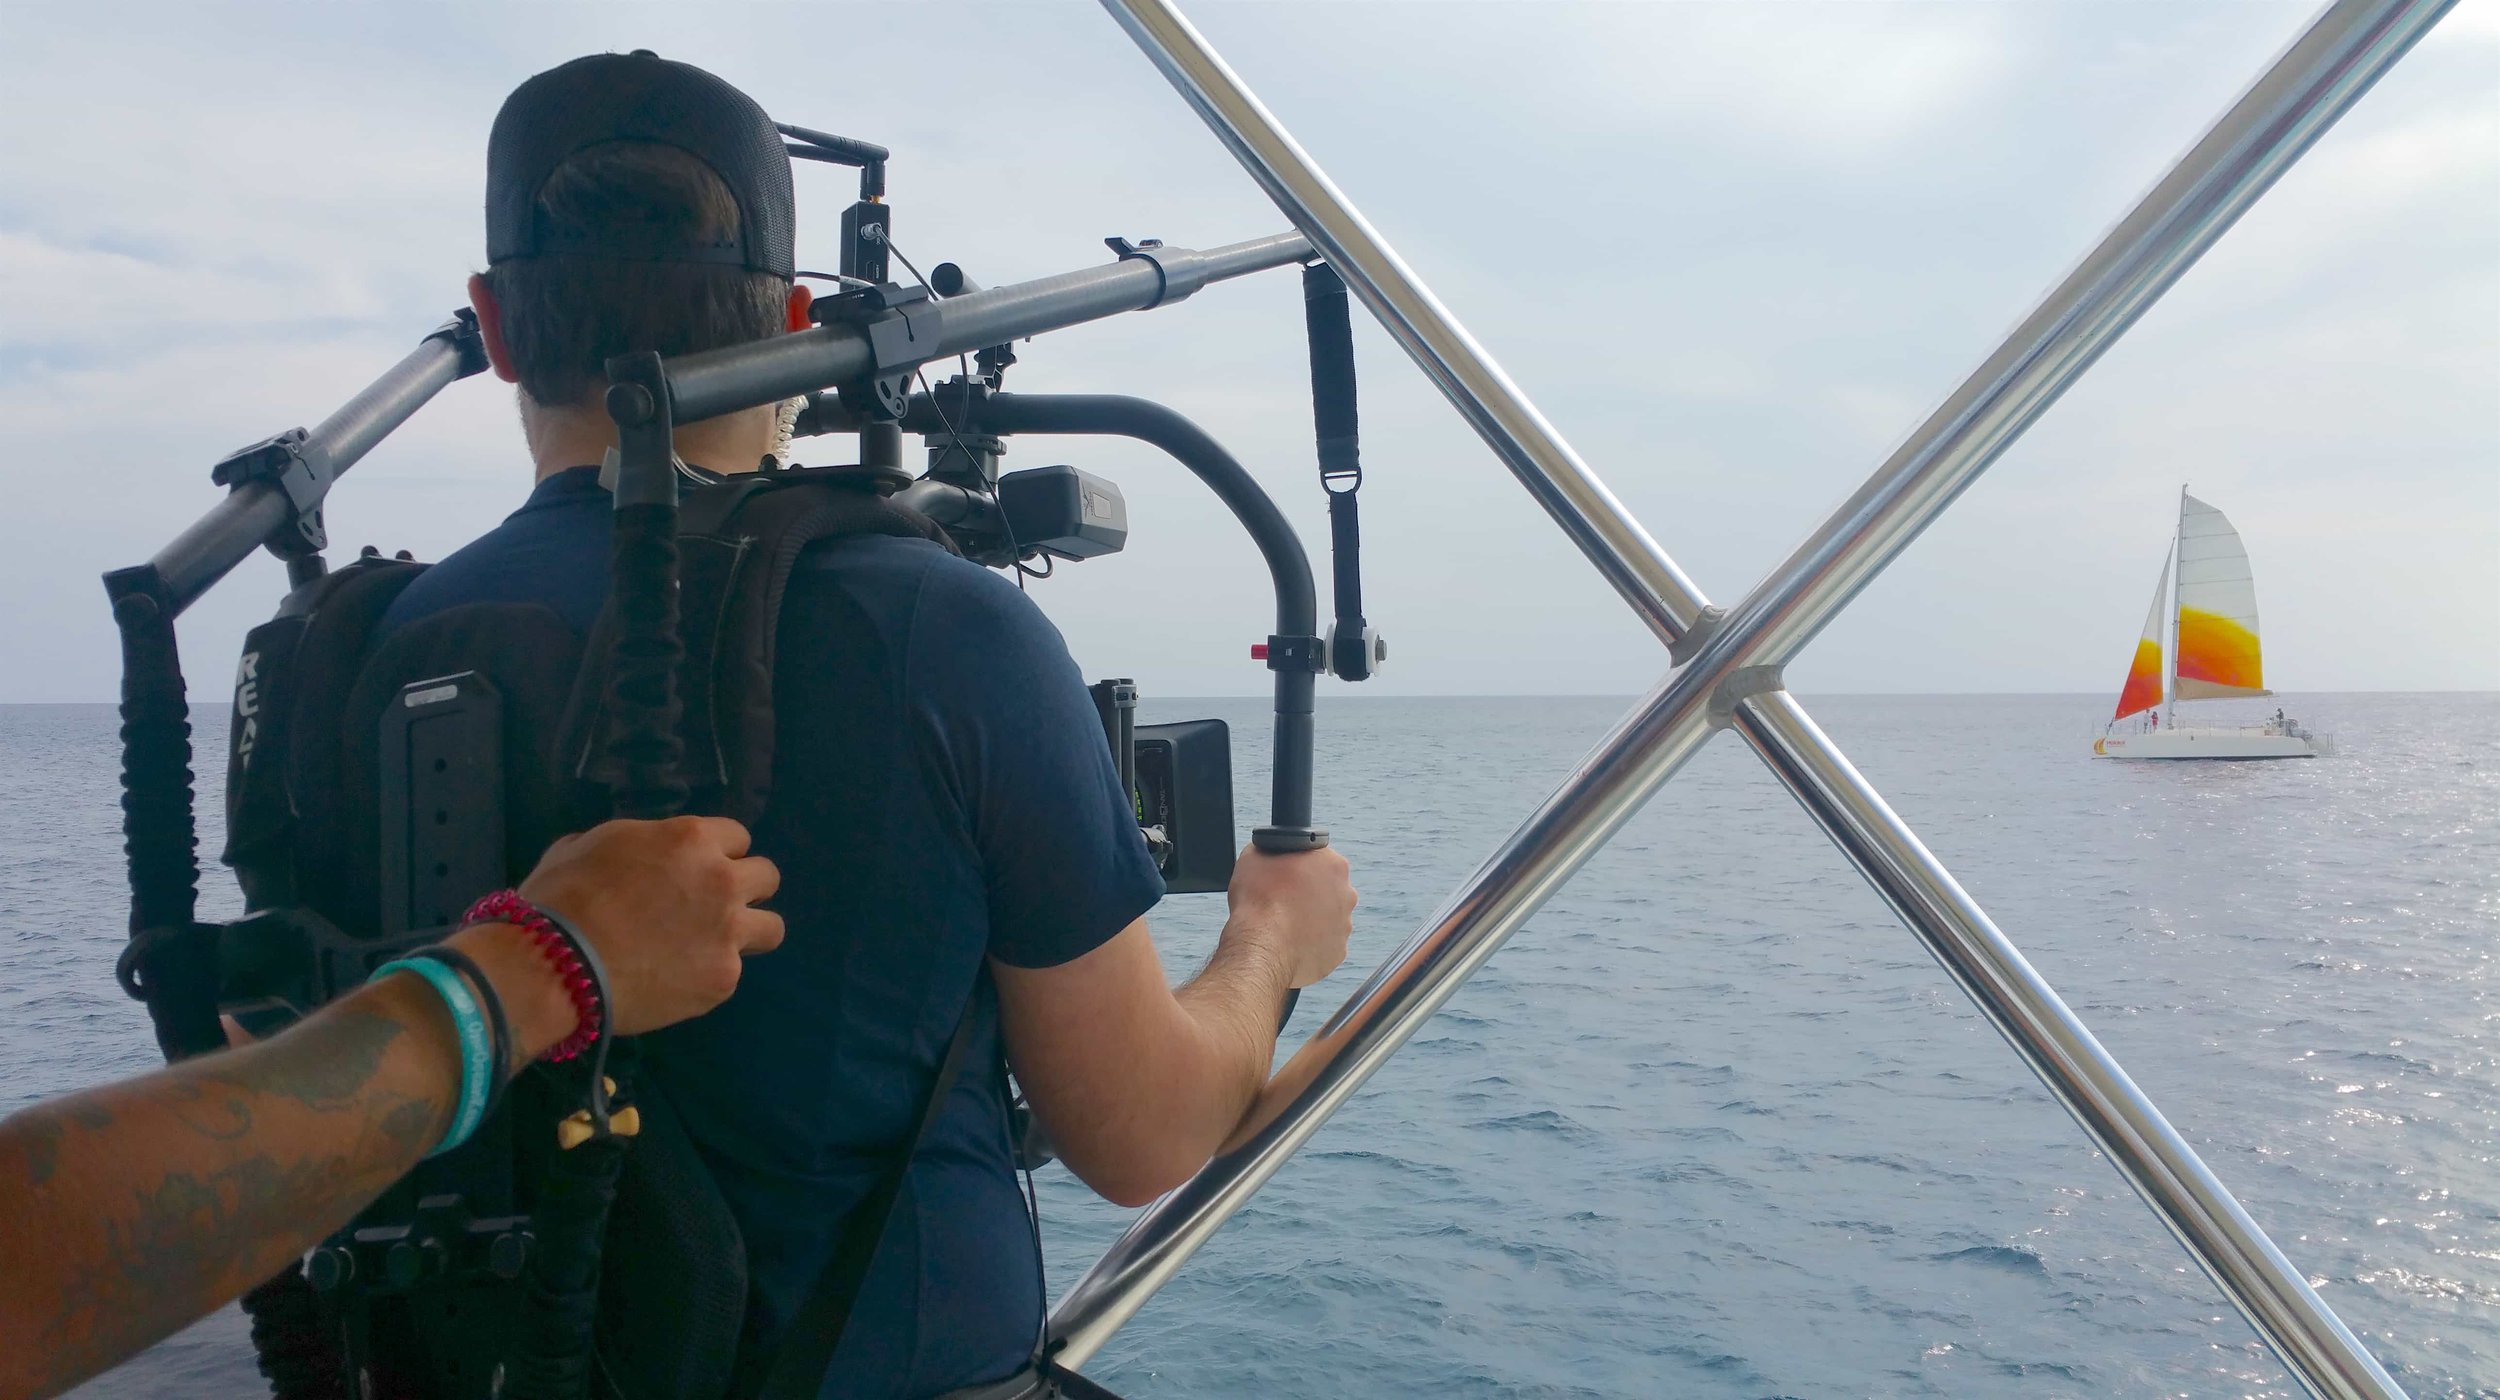 Ryan Hamelin operating Sight & Sound's Movi Pro to film the  Holokai Catamaran  in the distance.